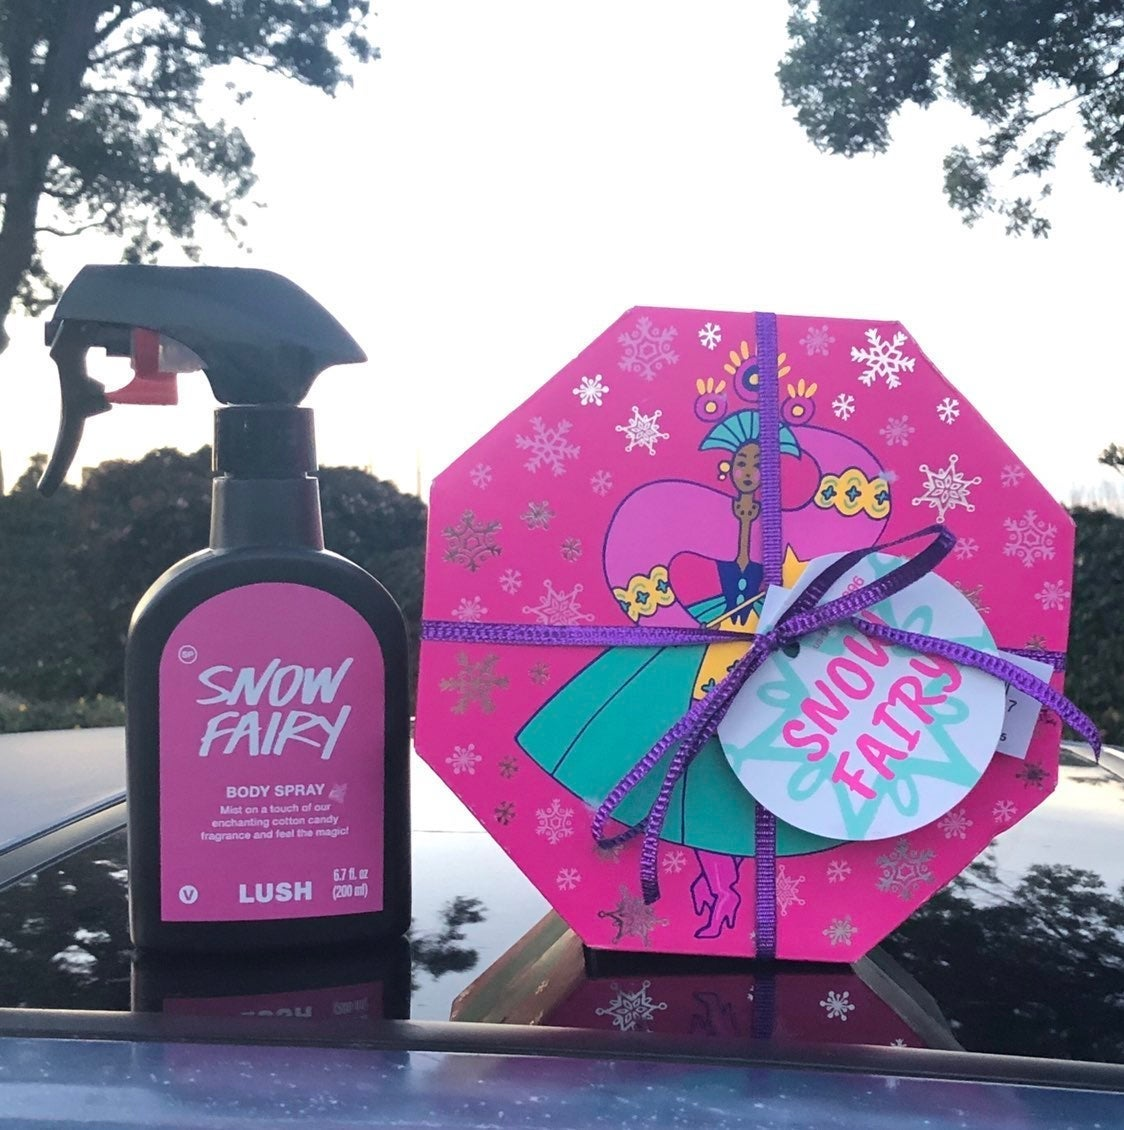 Lush Snow Fairy Spray & Gift Set